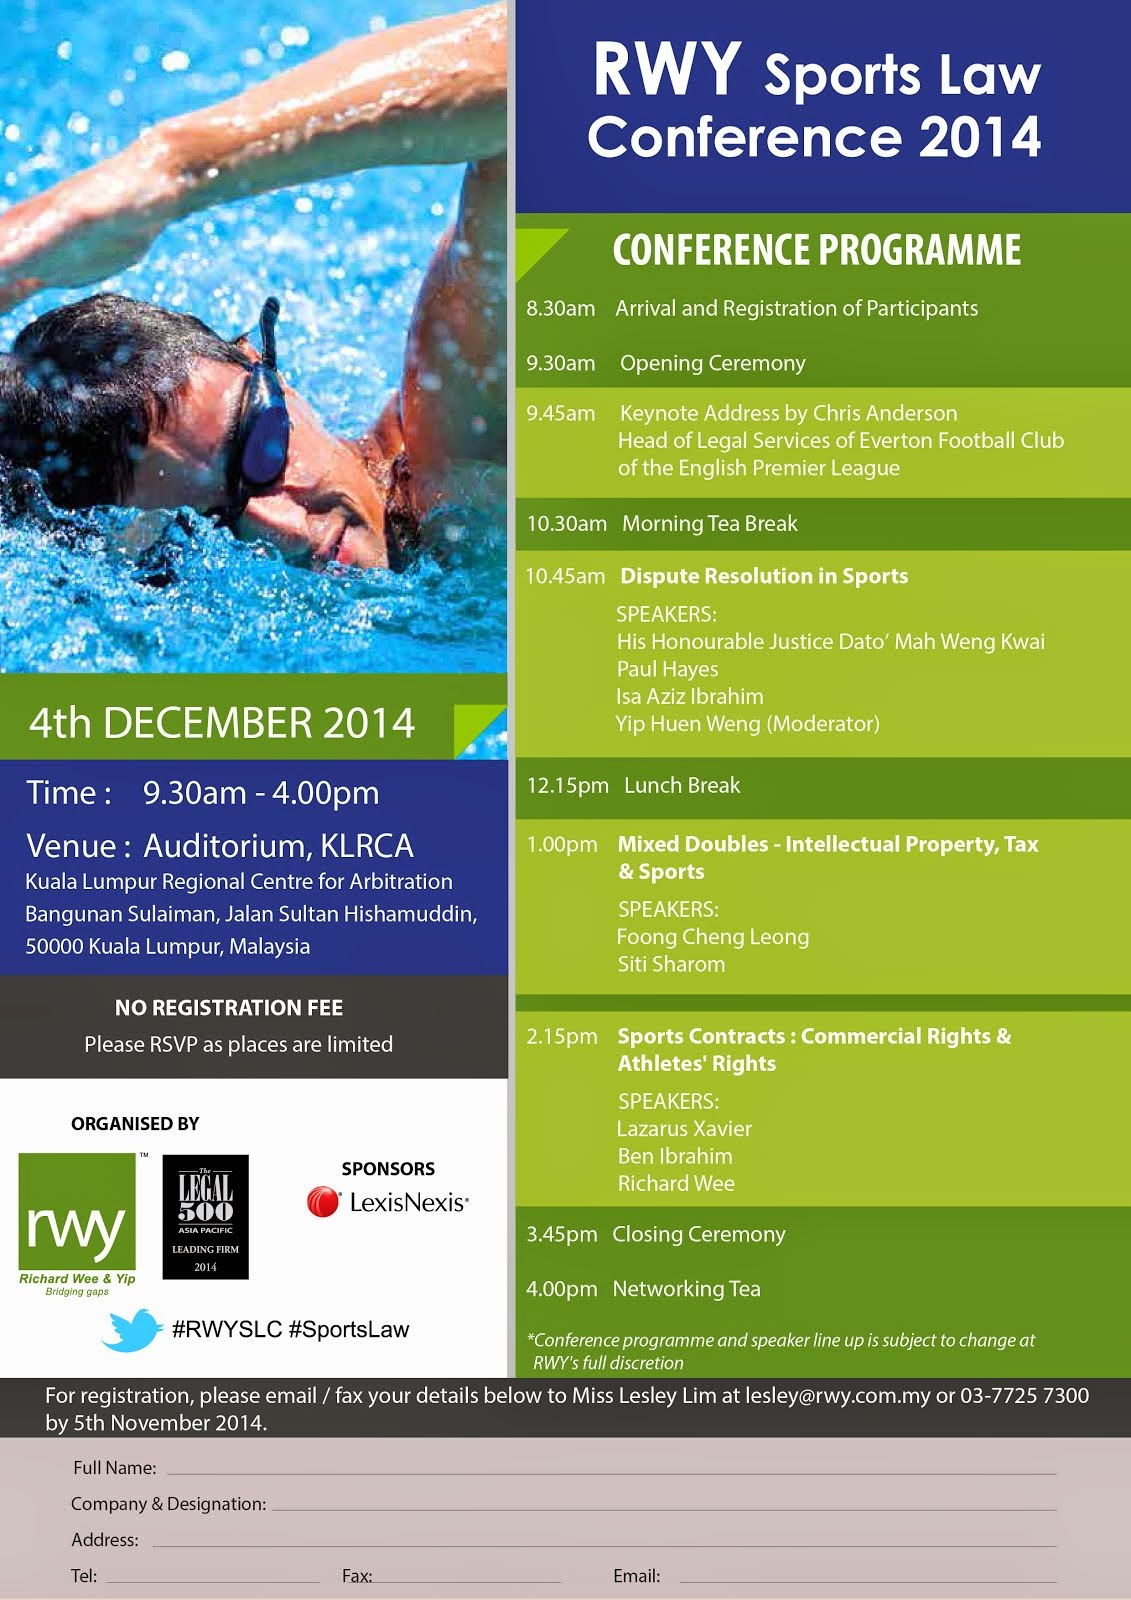 RWY Sports Law Conference 2014